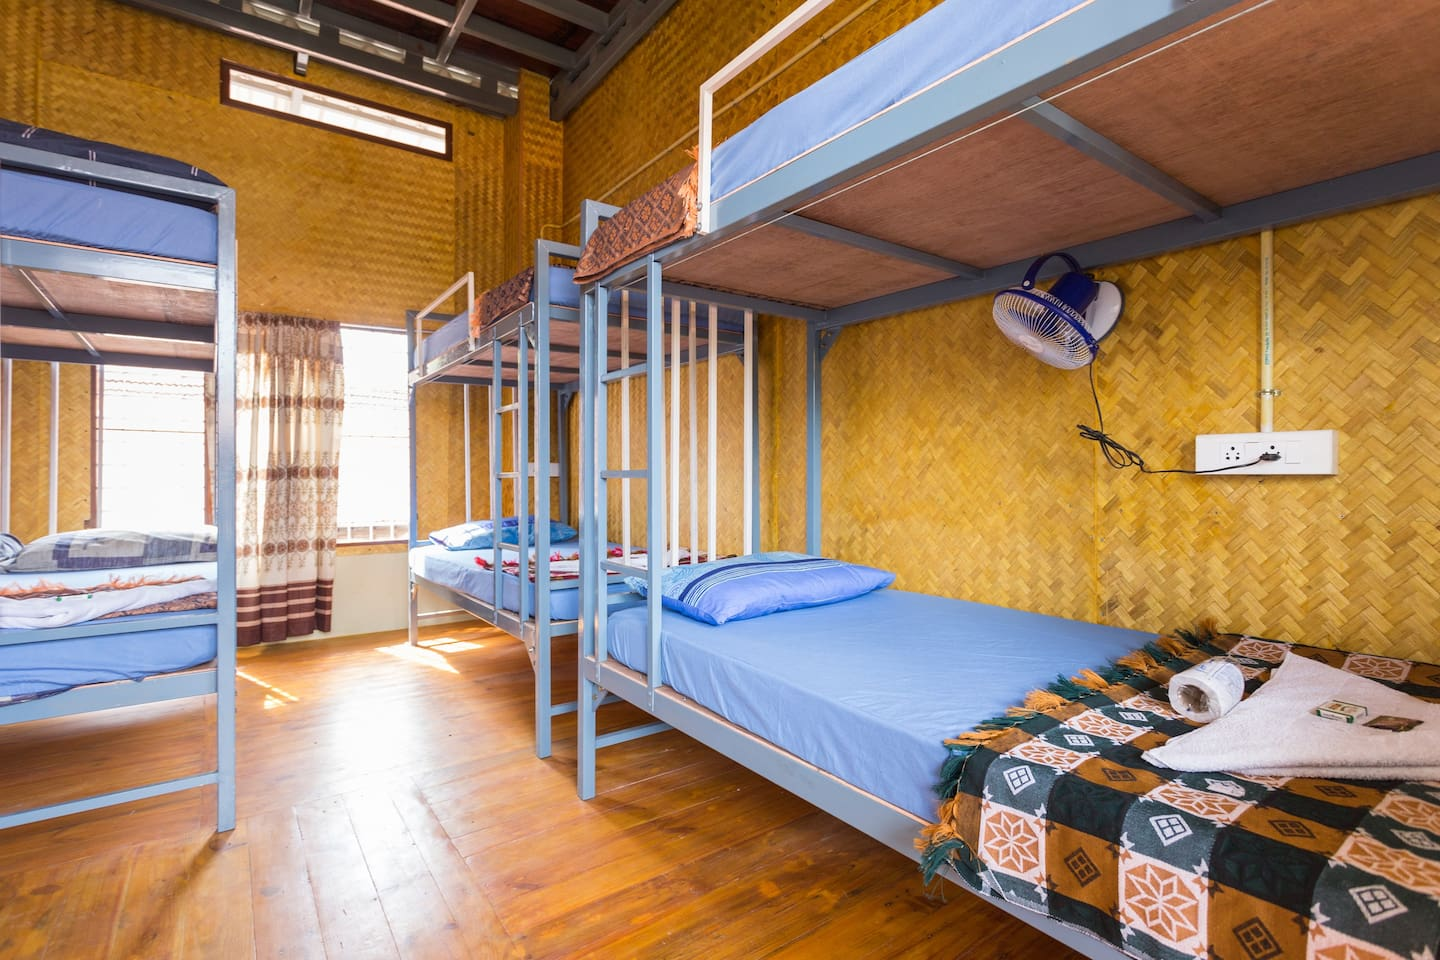 Spacious Single Beds in dorm